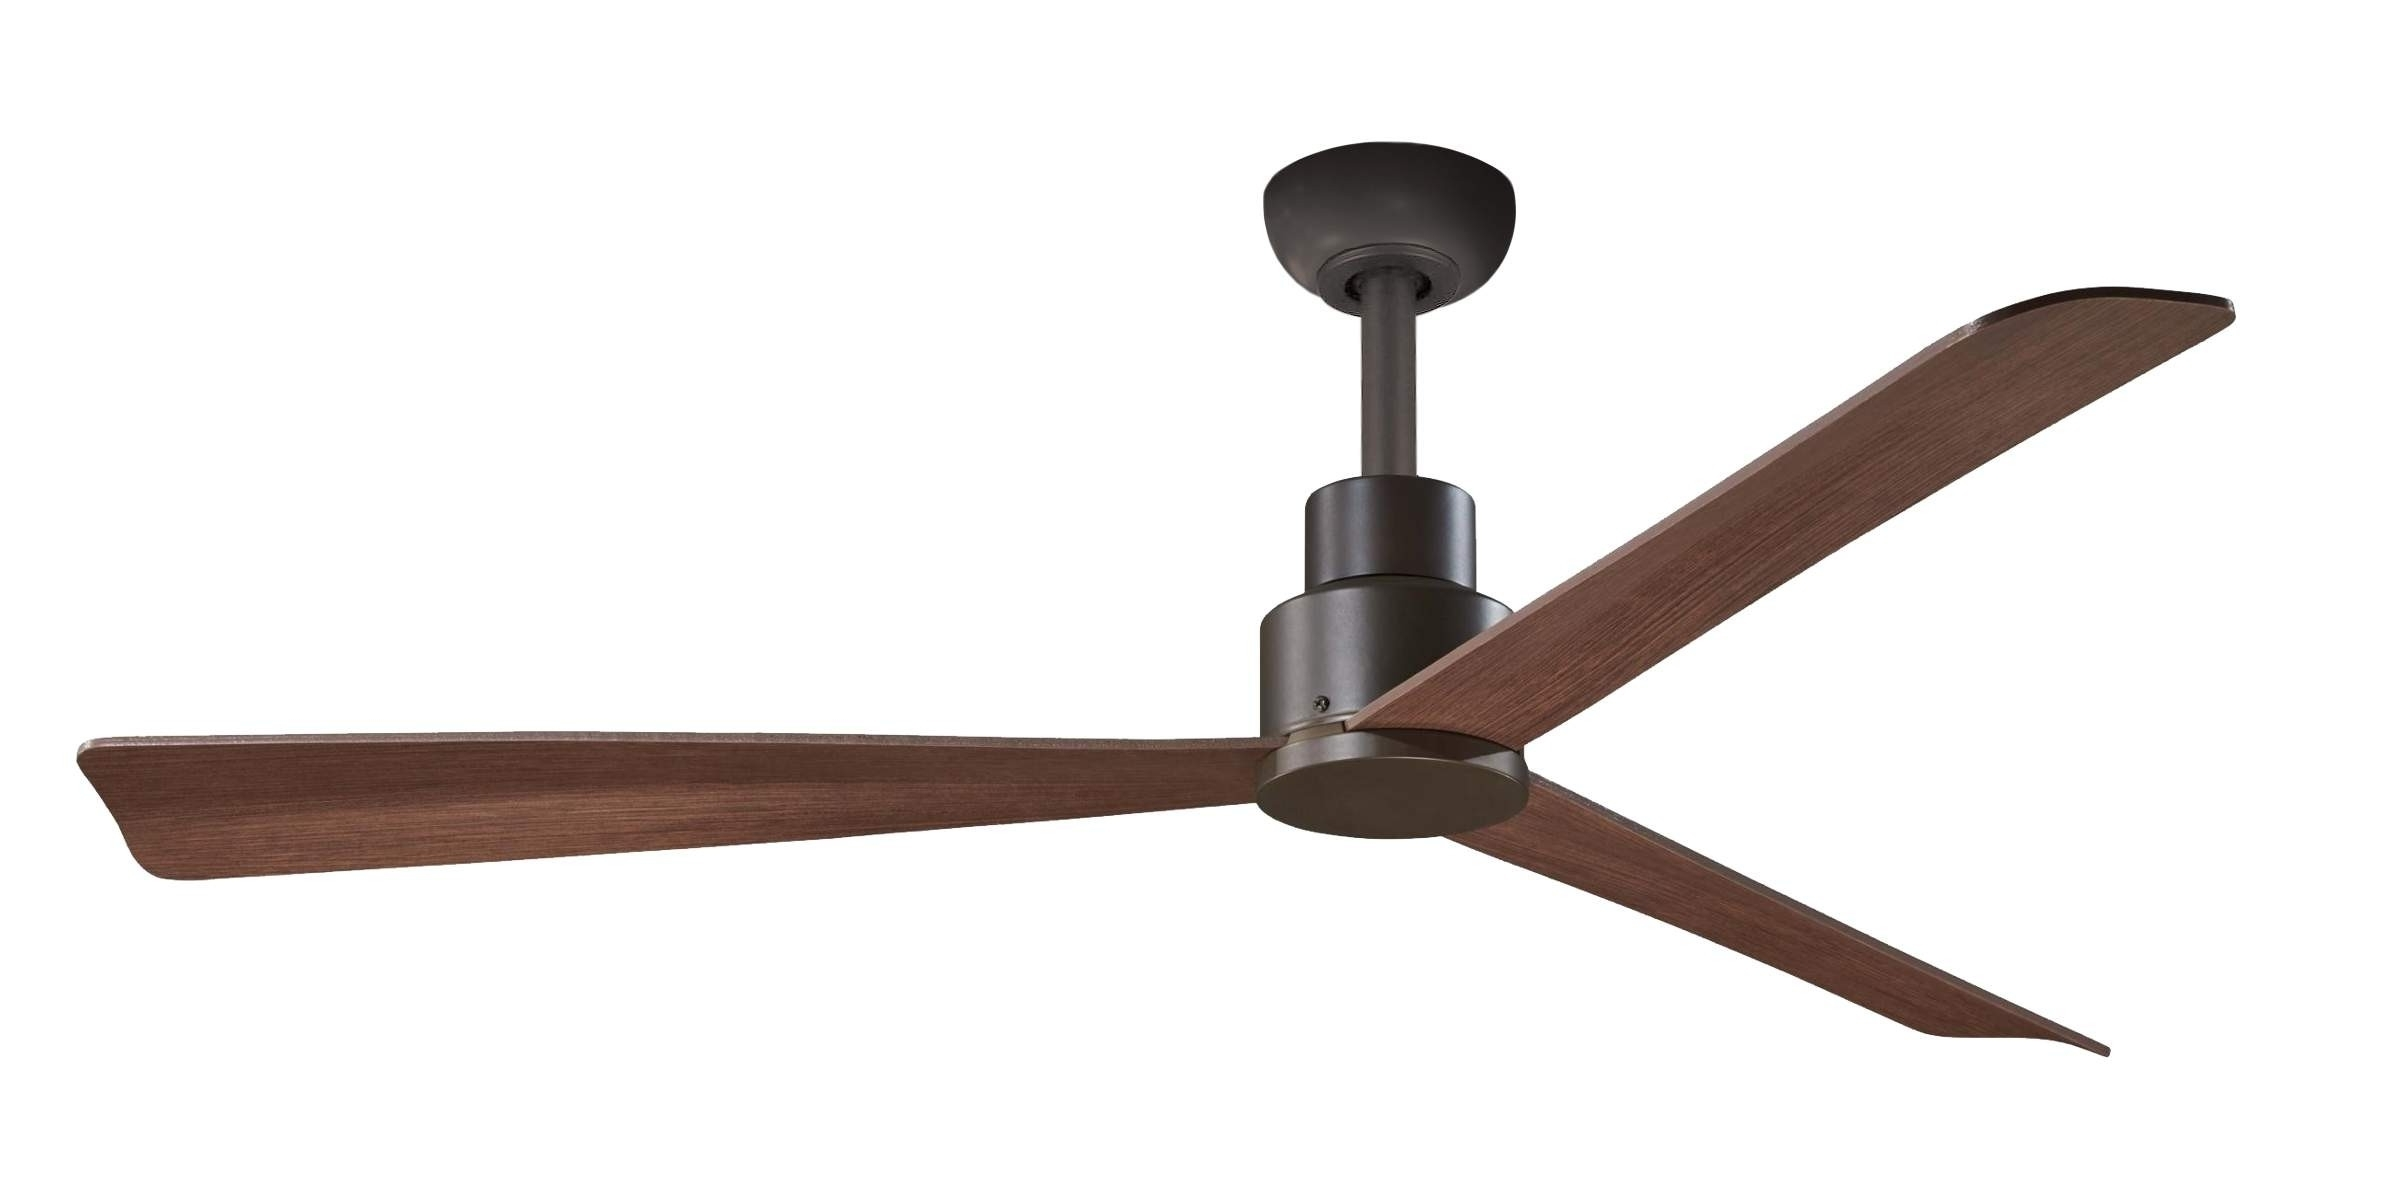 Outdoor Ceiling Fans For Canopy In Most Recent Minka Aire Simple Ceiling Fan Model F787 Orb In Oil Rubbed Bronze (View 12 of 20)